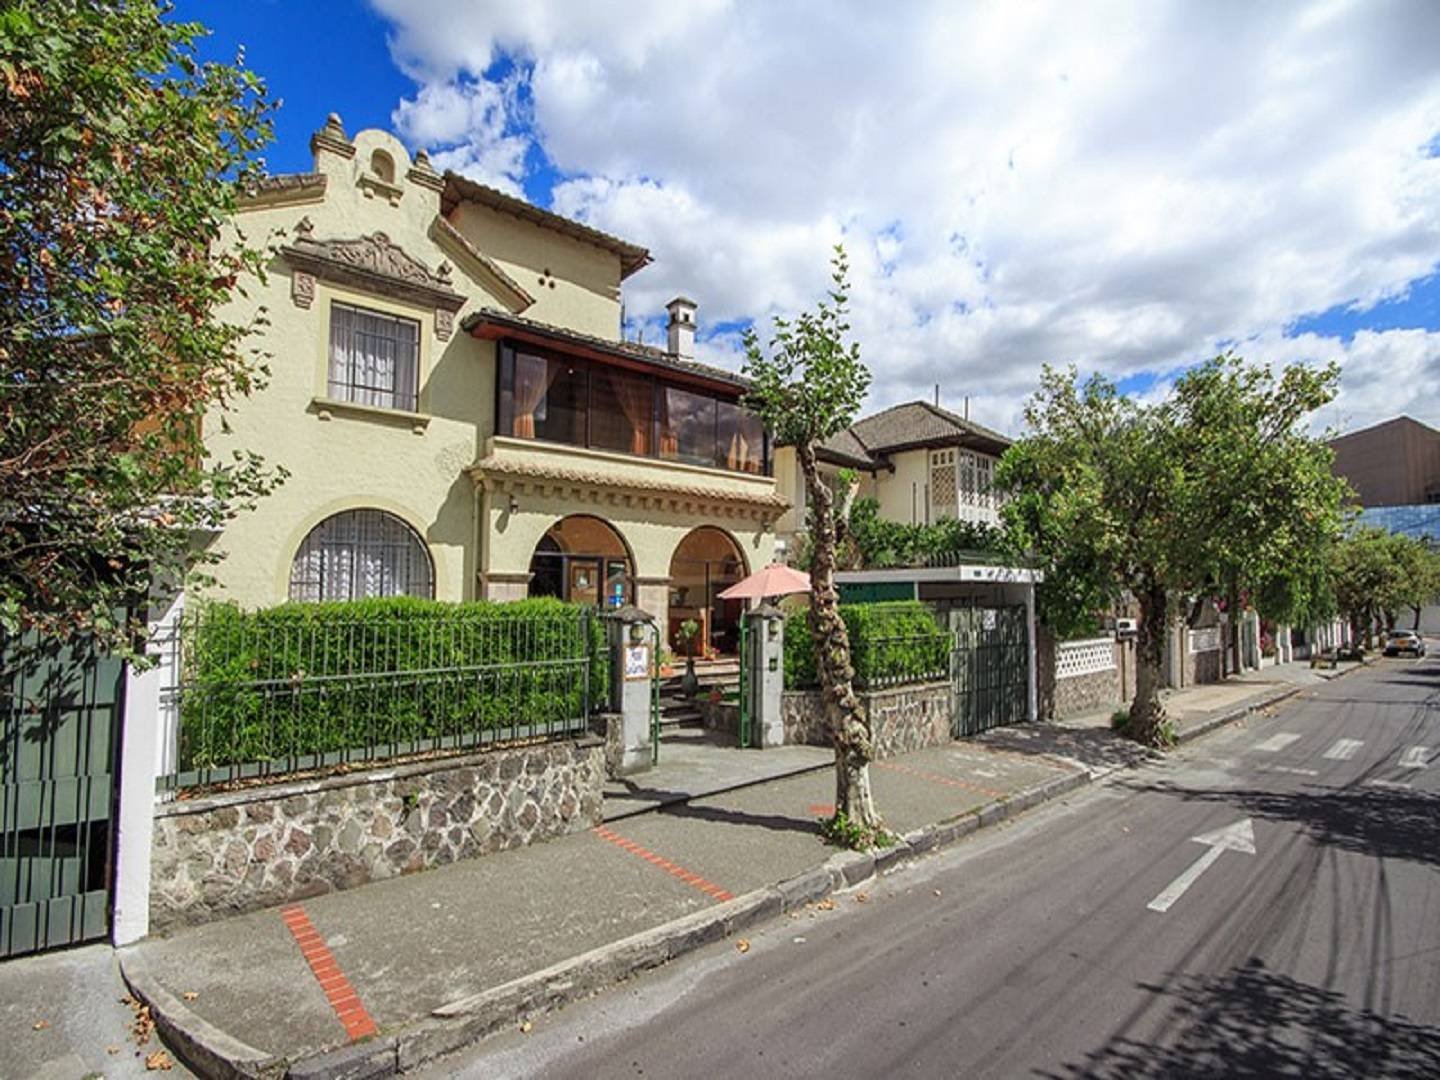 A house in the middle of the street at La Cartuja Hotel.